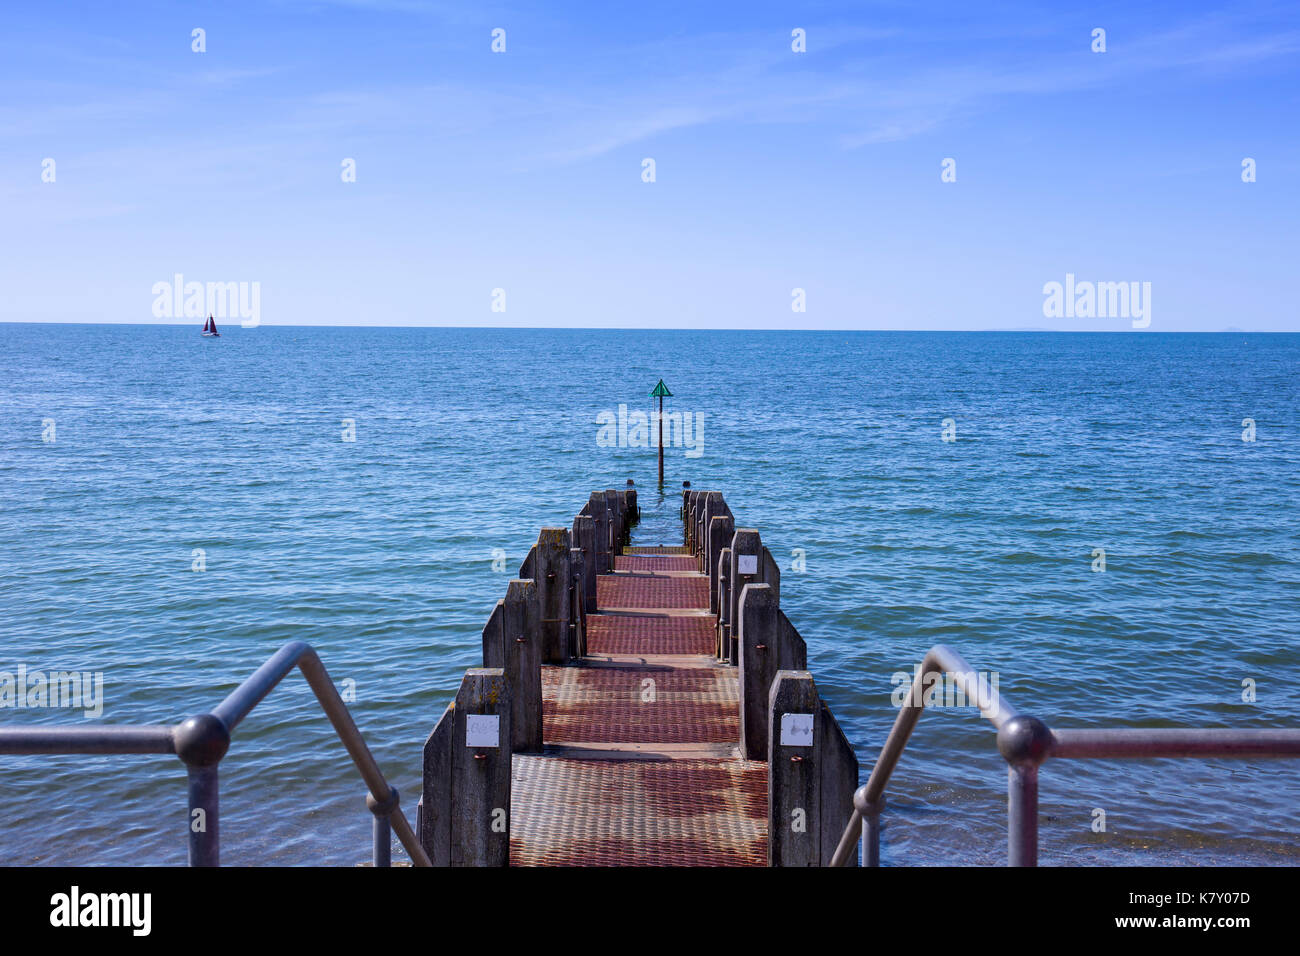 A sailboat on Cardigan bay with jetty in Aberystwyth Ceredigion Wales UK - Stock Image